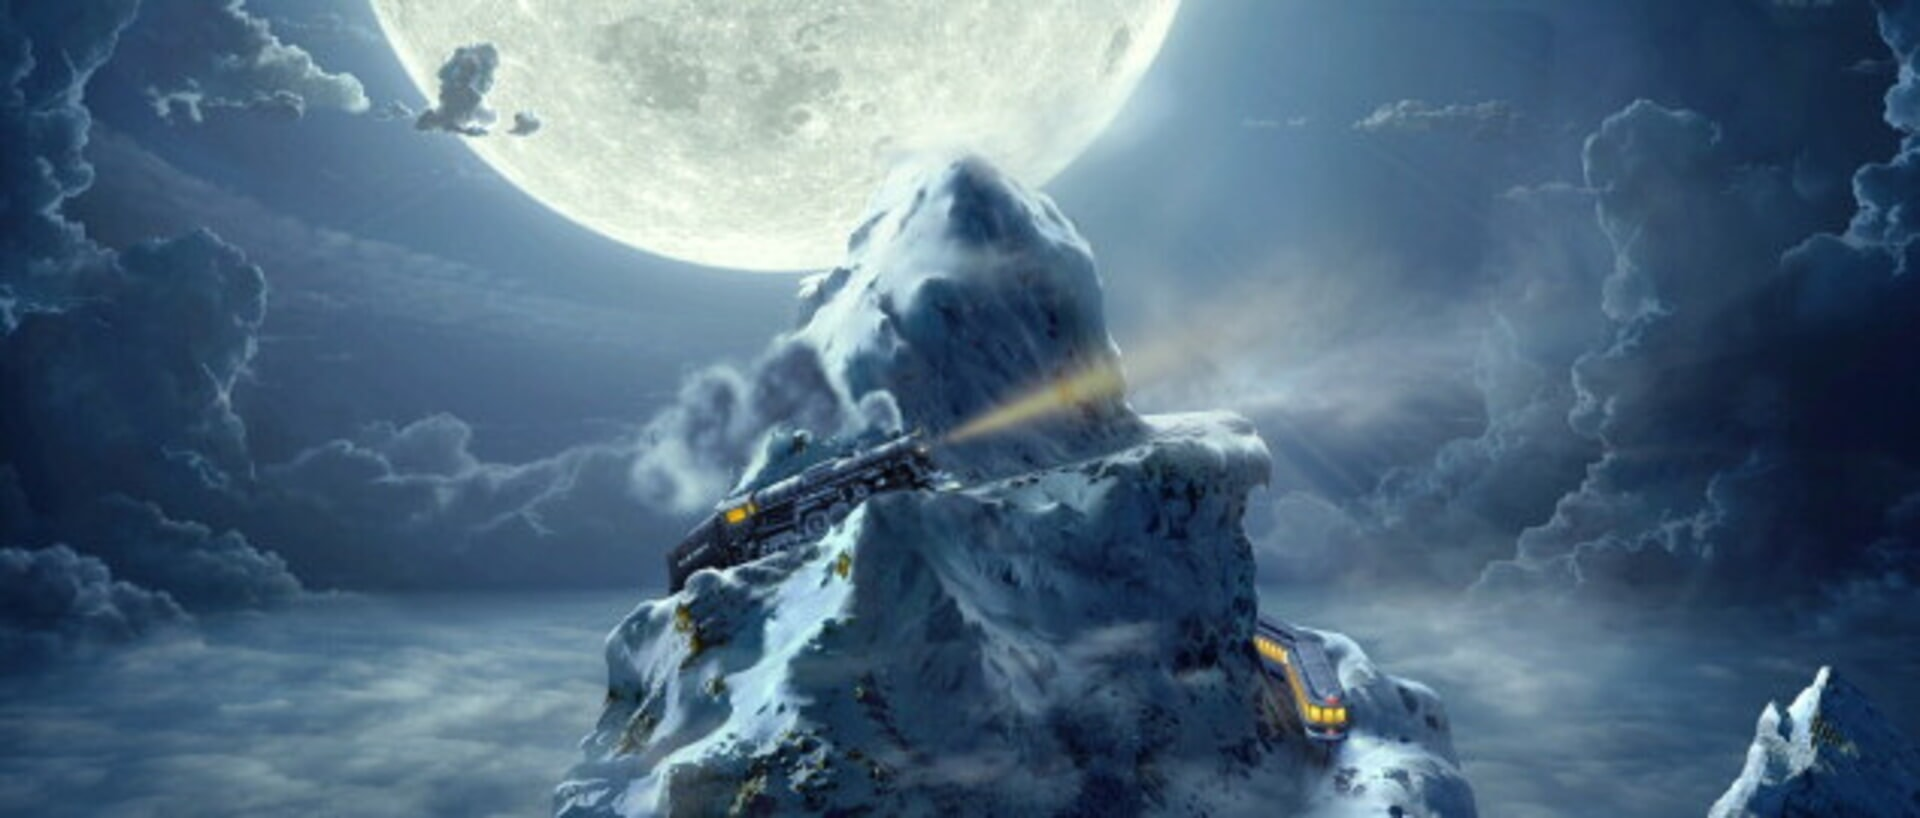 The Polar Express - Image 34